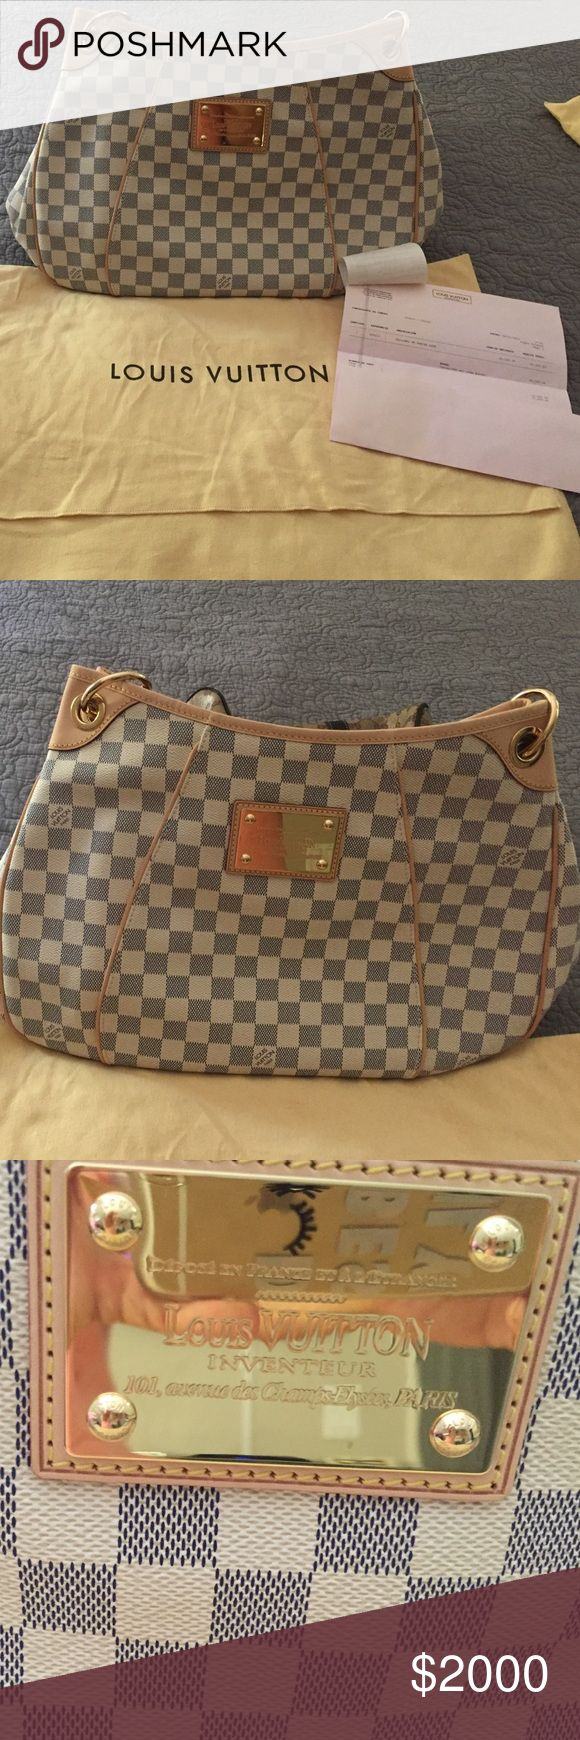 LOUIS VUITTON GALLERIA PM DAMIER AZUR This si an auténtico LOUIS VUITTON DAMIER AZUR GALLERIA BAG never been used. Hobo style handbag is a signature damier canvas in azur. It features a vachetta cowhide leather looping shoulder trap, piping trim and brass hardware. This roomy and chic LV shoulder bag is perfect for everyday use!!!!! Louis Vuitton Bags Hobos